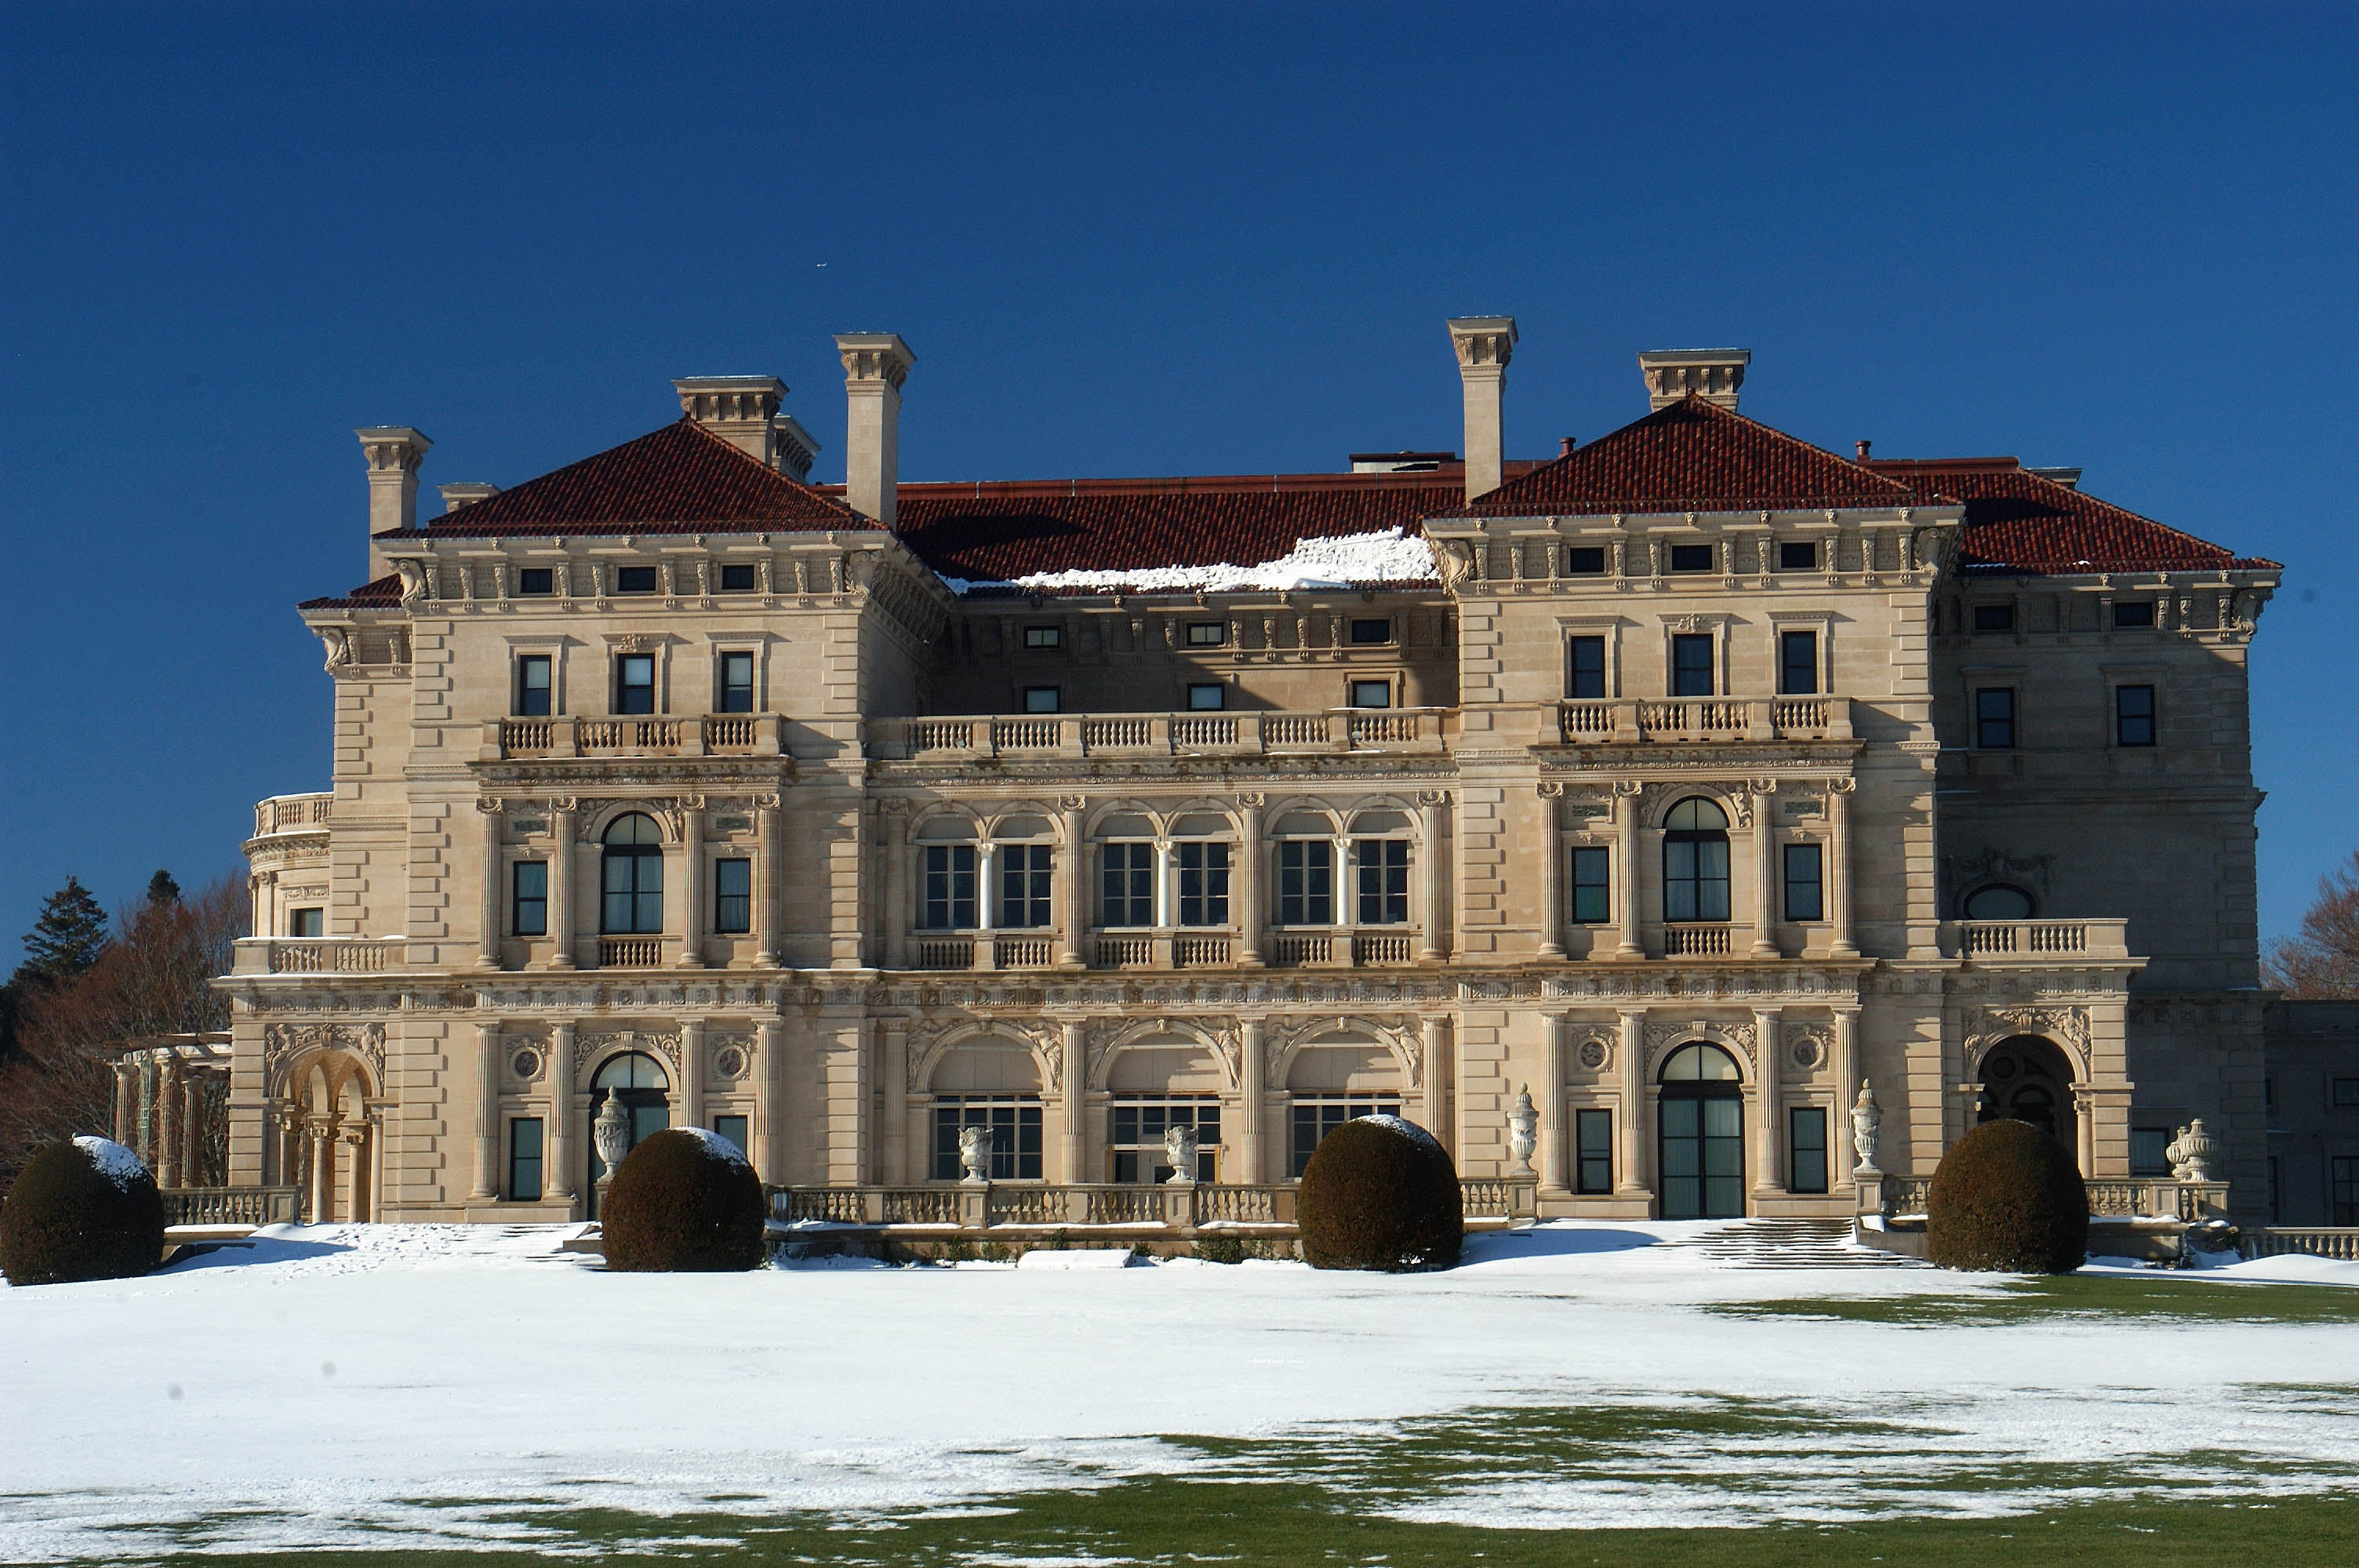 Photo 368-25: The Breakers Mansion in Newport. Rhode Island